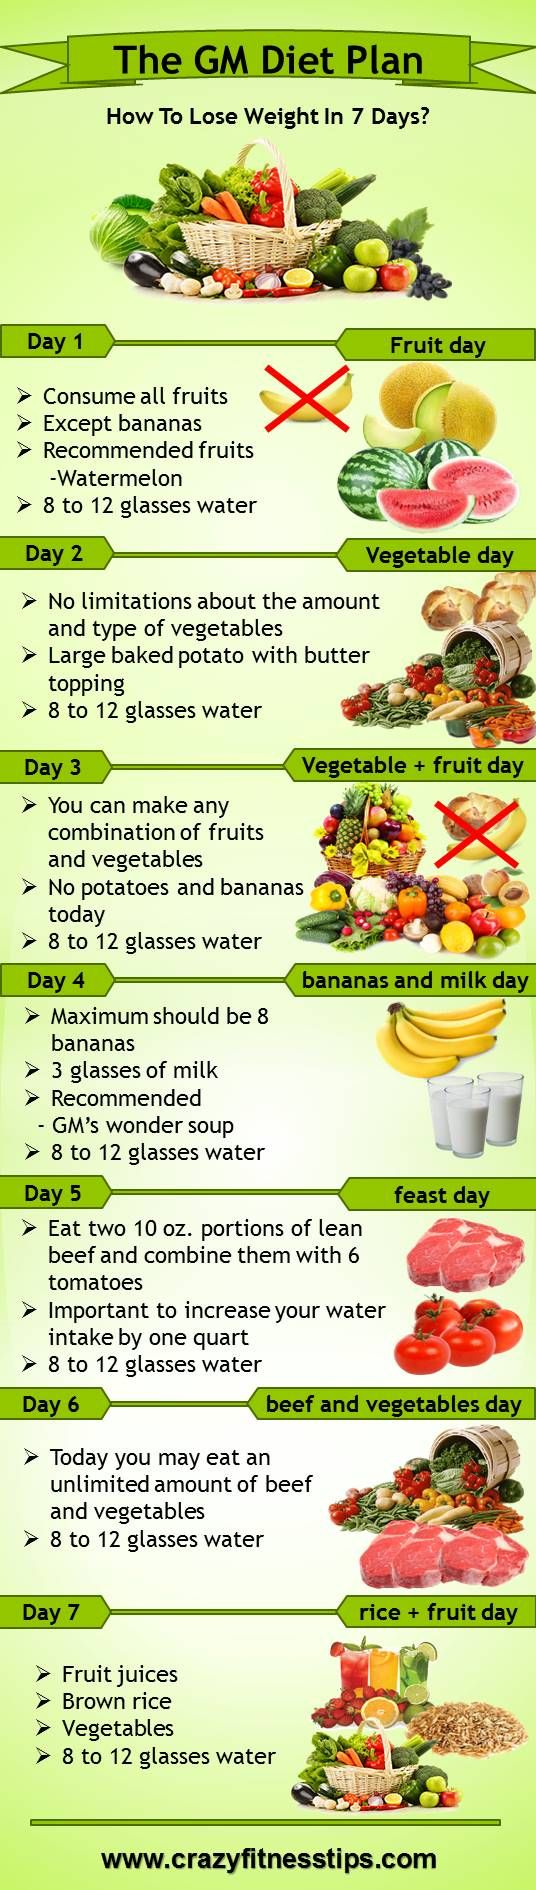 Amazing GM Diet Plan To Lose Weight In 7 Days